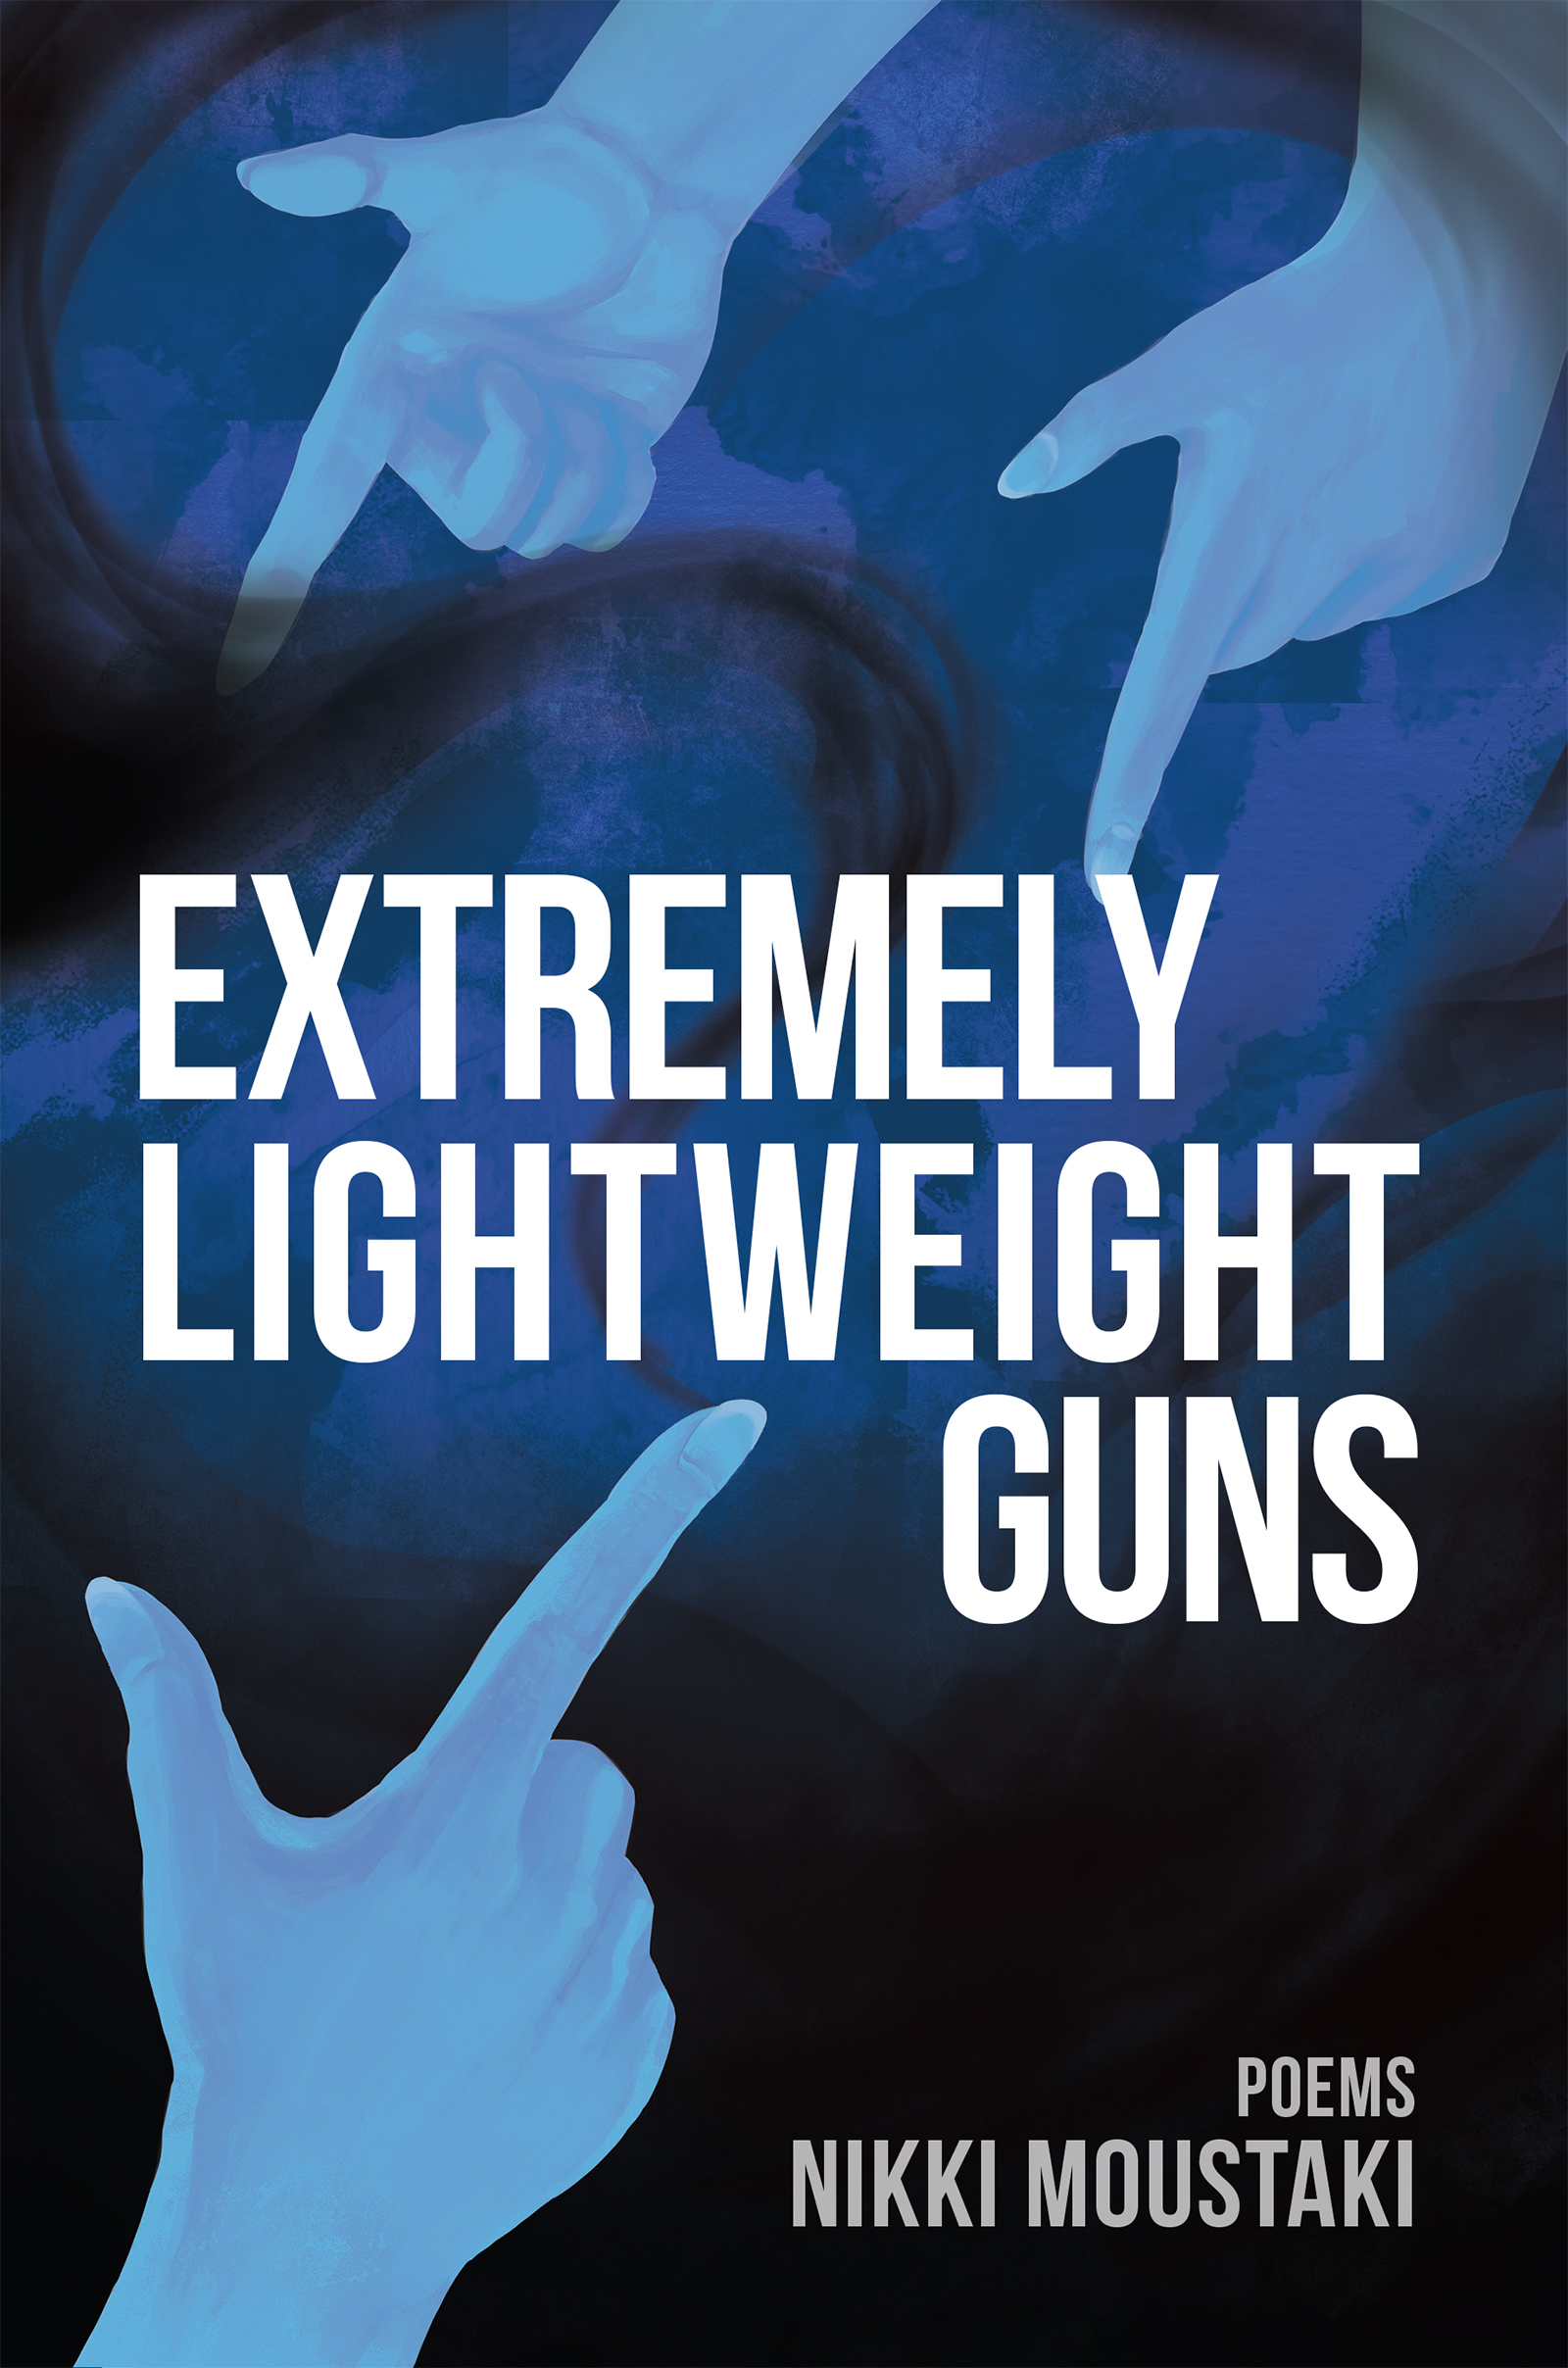 Three blue hands pointed towards the center script that reads Extremely Lightweight Guns poems by Nikki Moustaki.